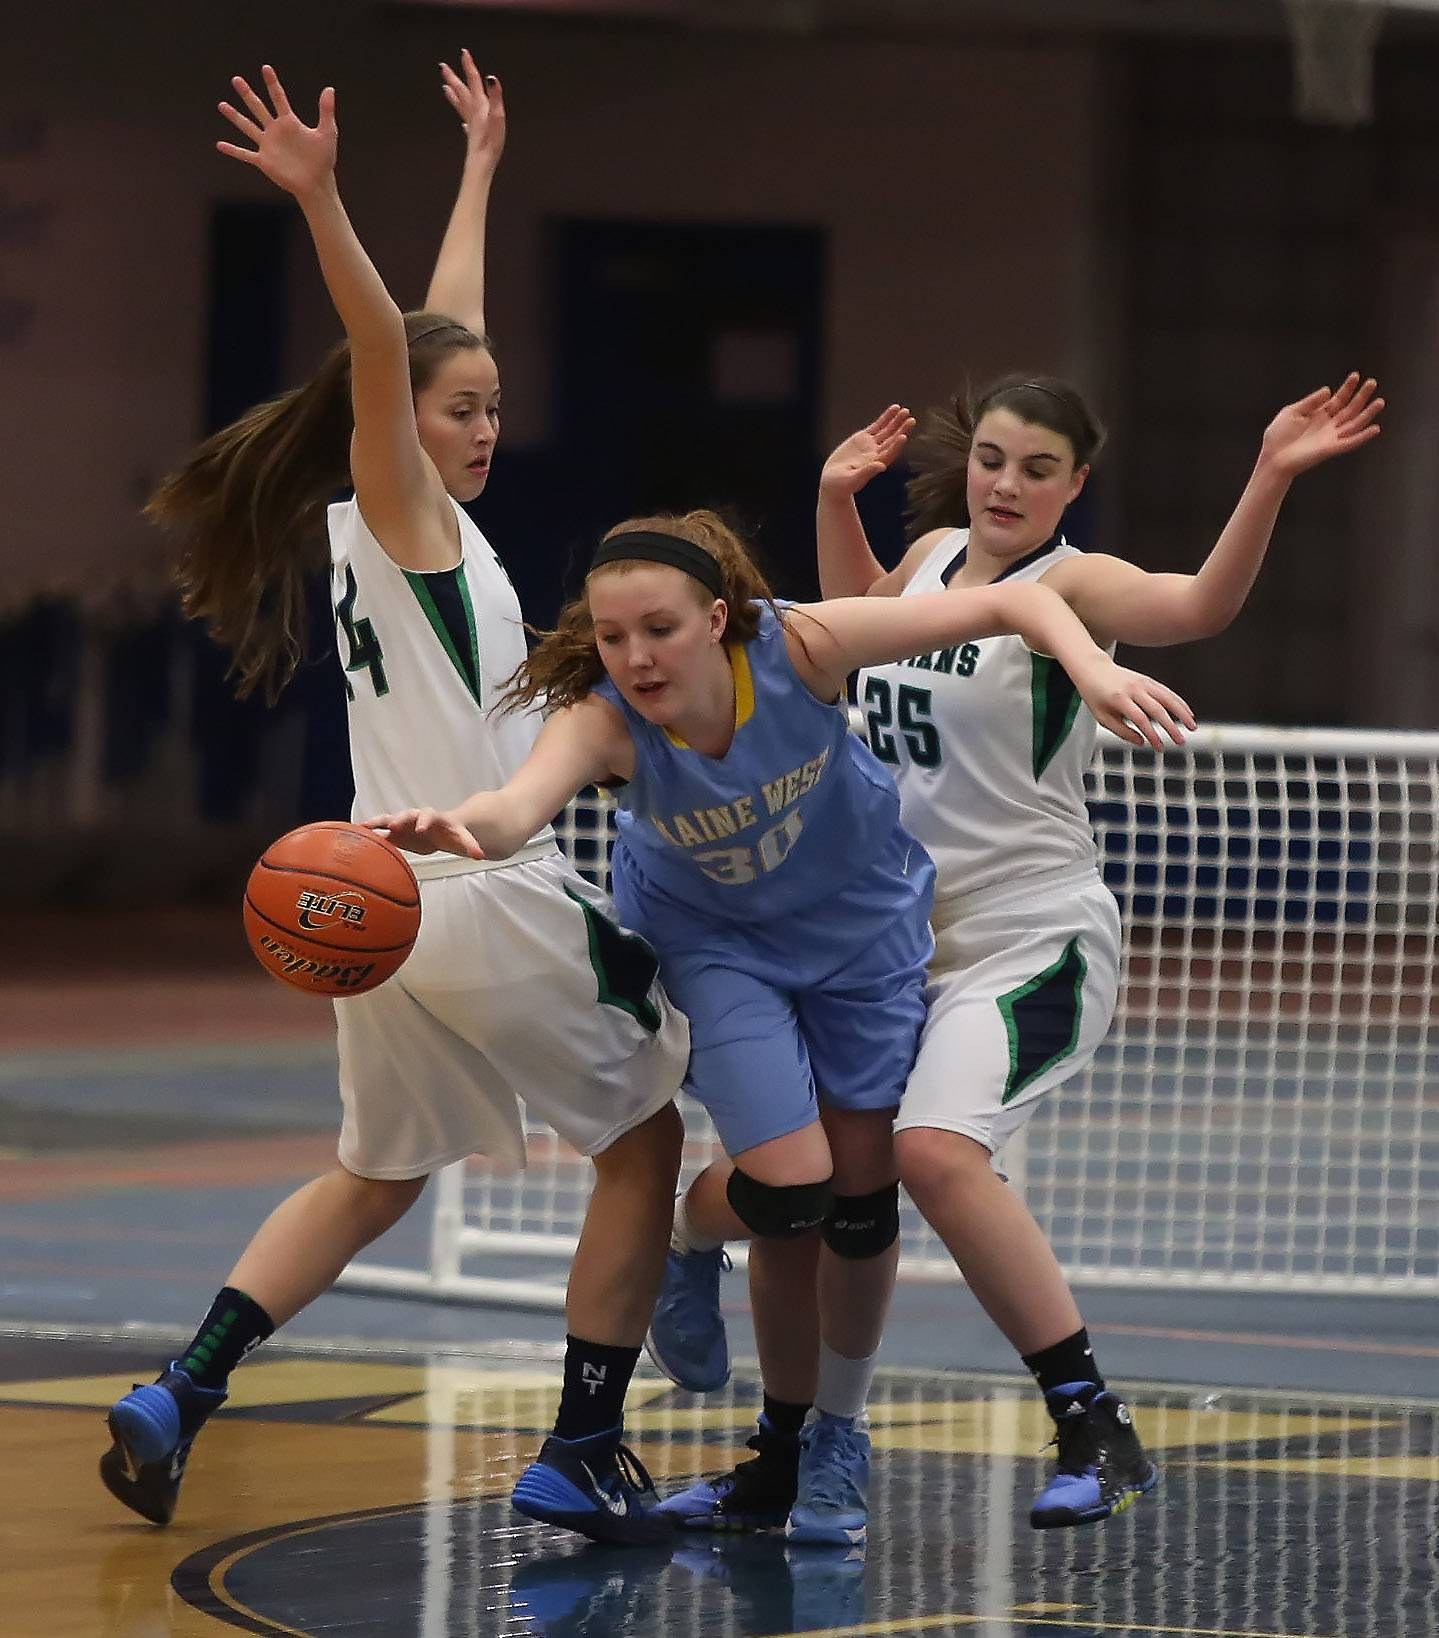 Maine West senior forward Brittany Collins splits New Trier defenders Jackie Welch, left, and Kathryn Pedi during Monday's Class 4A sectional semifinal at Maine East.